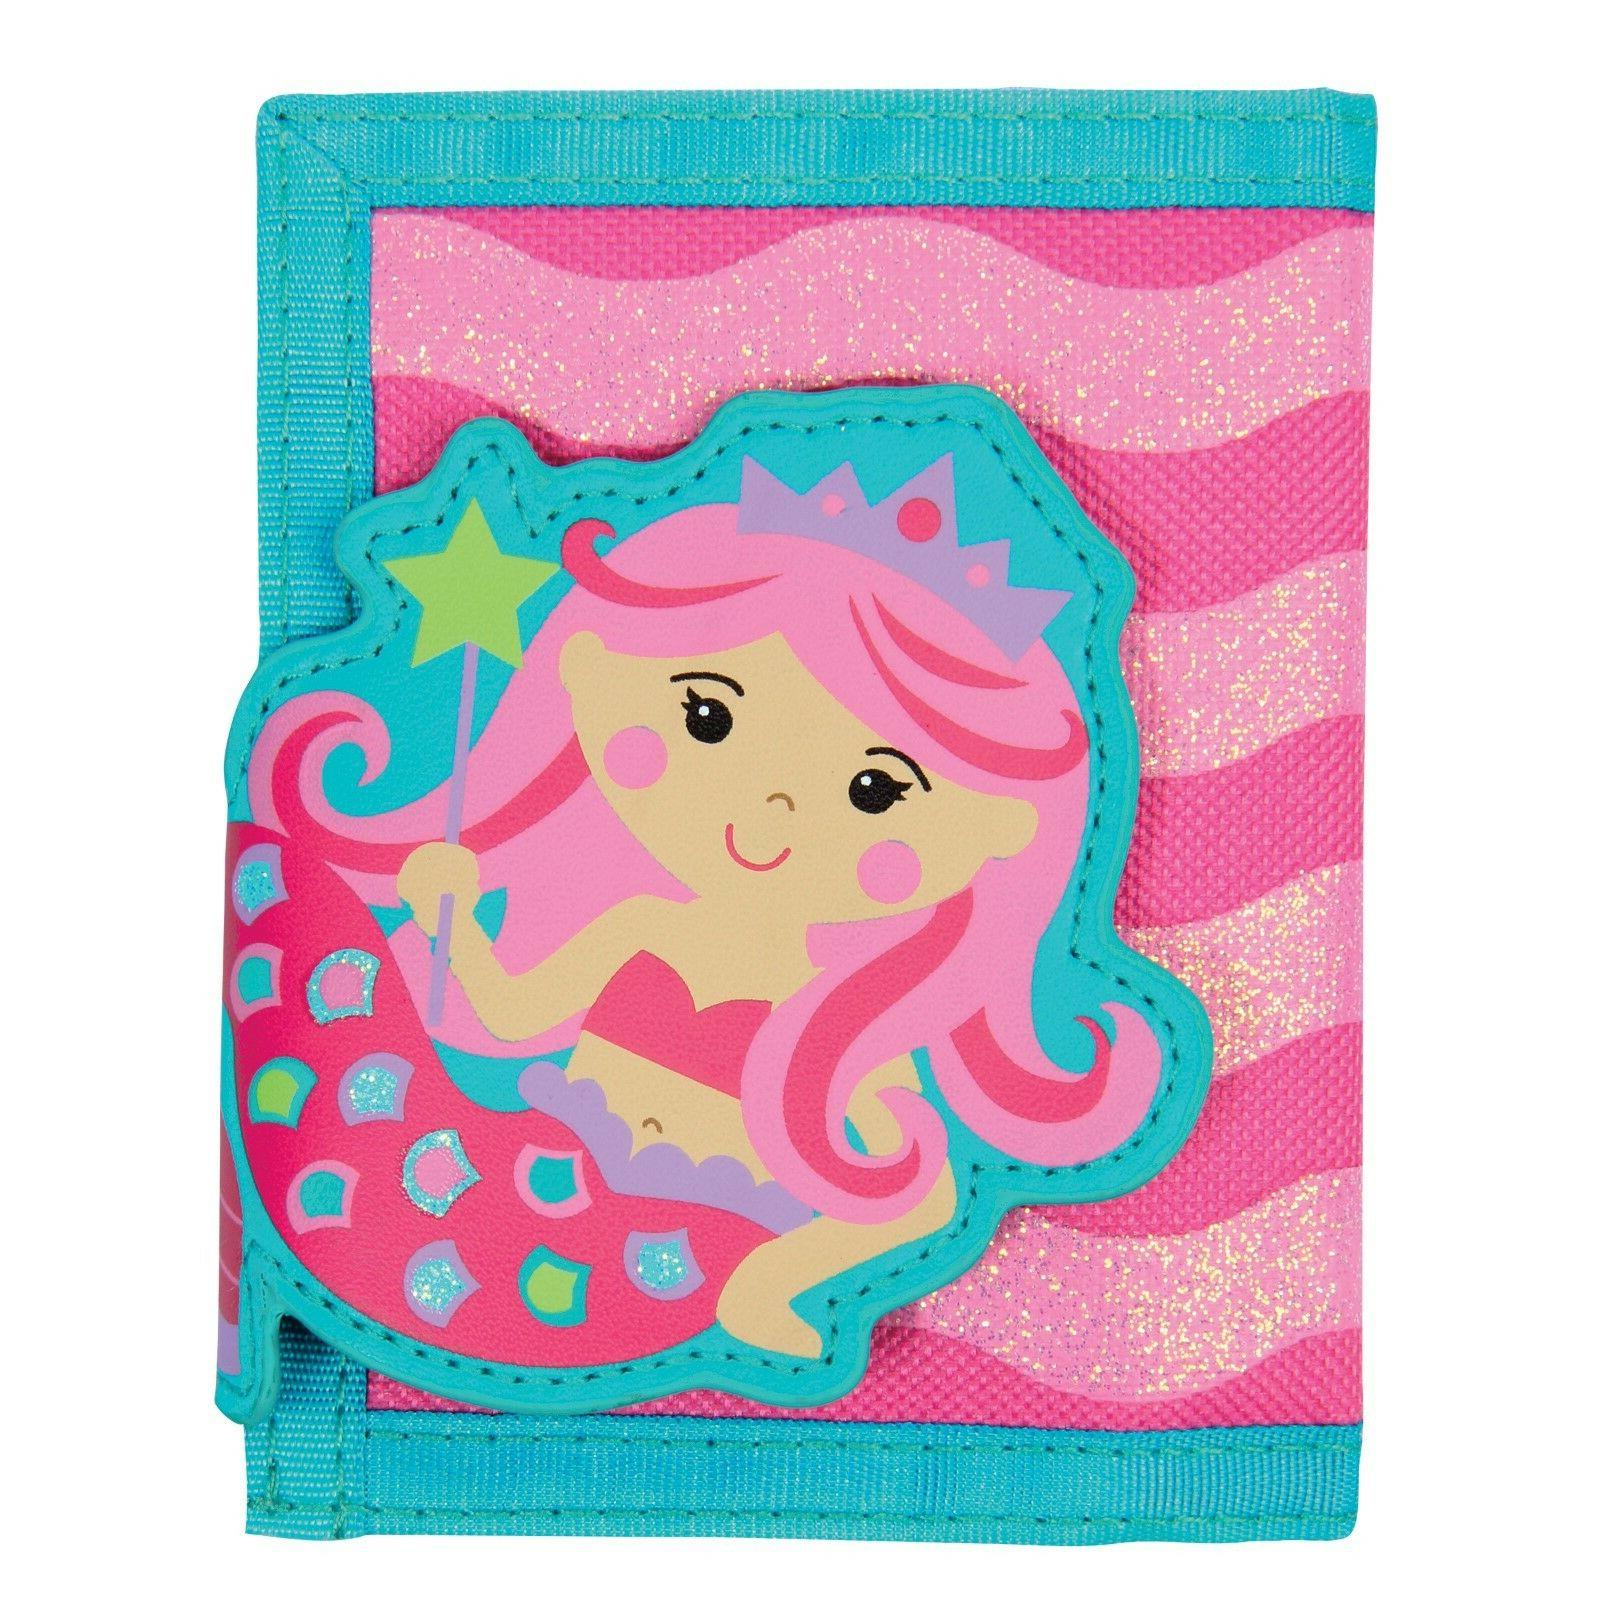 Stephen Joseph Mermaid Wallet for Girls - Money Holder for K